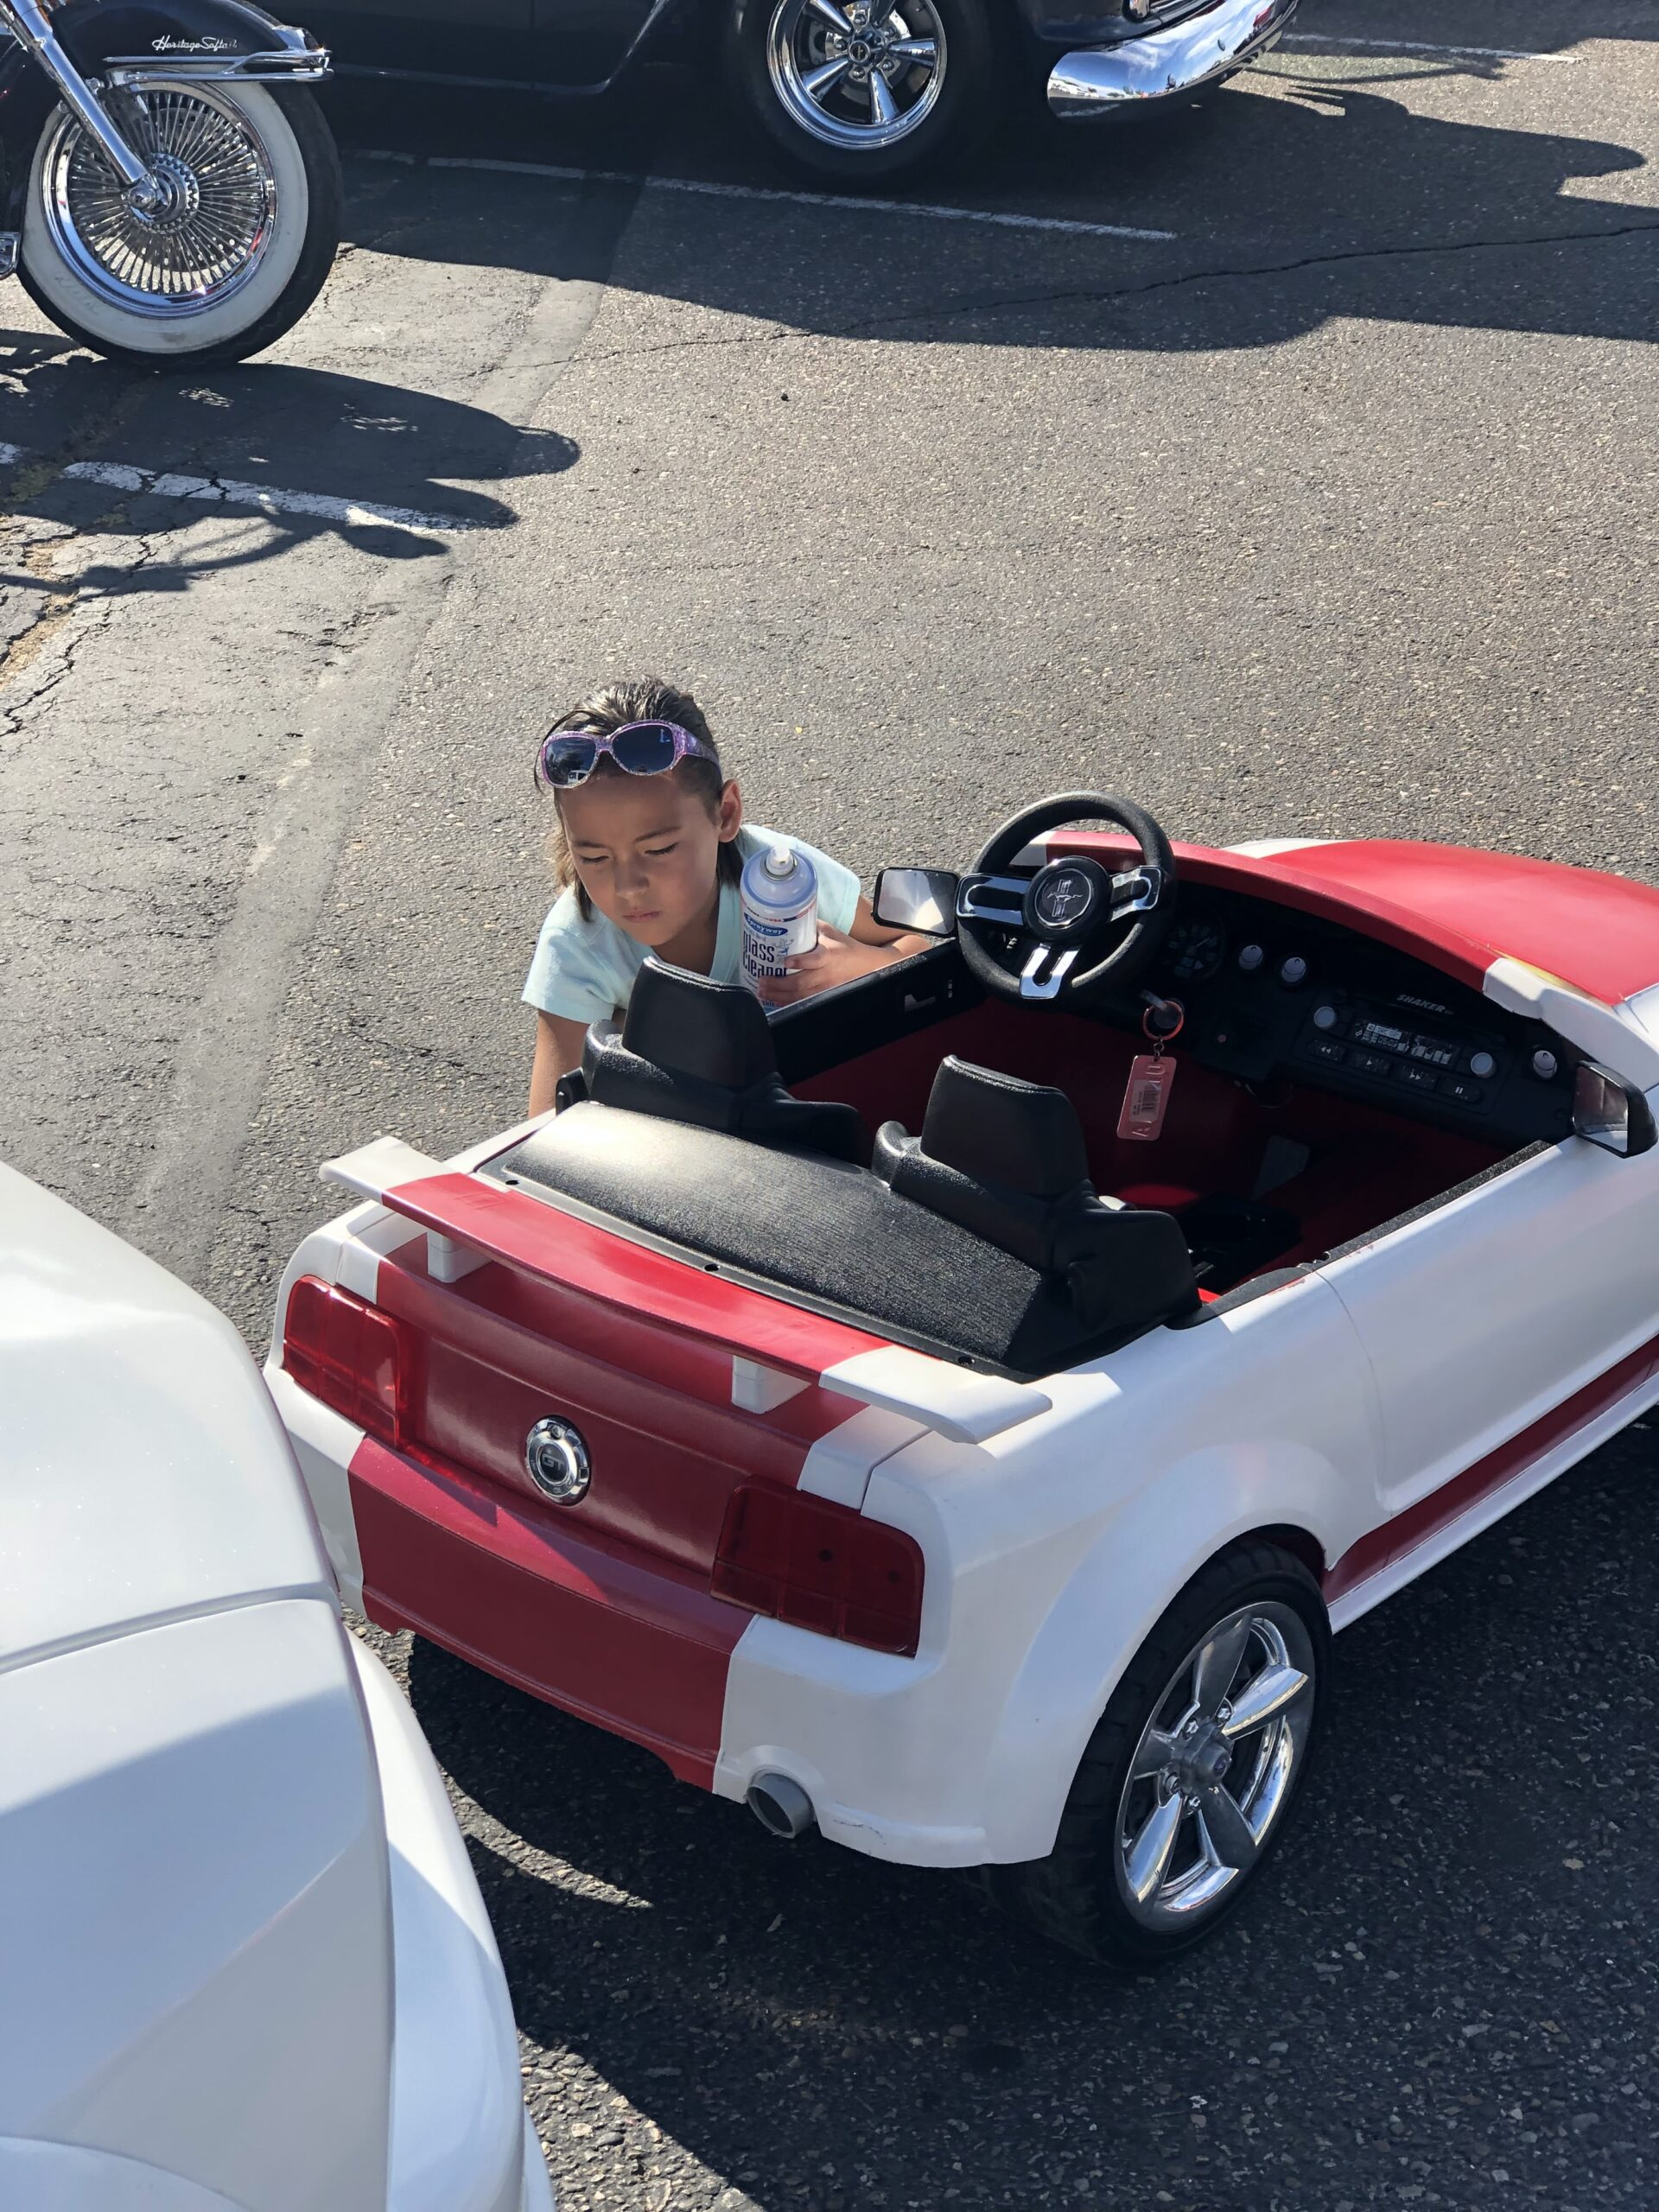 Jr and Olivia Martinez - Belen, NM  - 2007 Ford Mustang - Power wheels